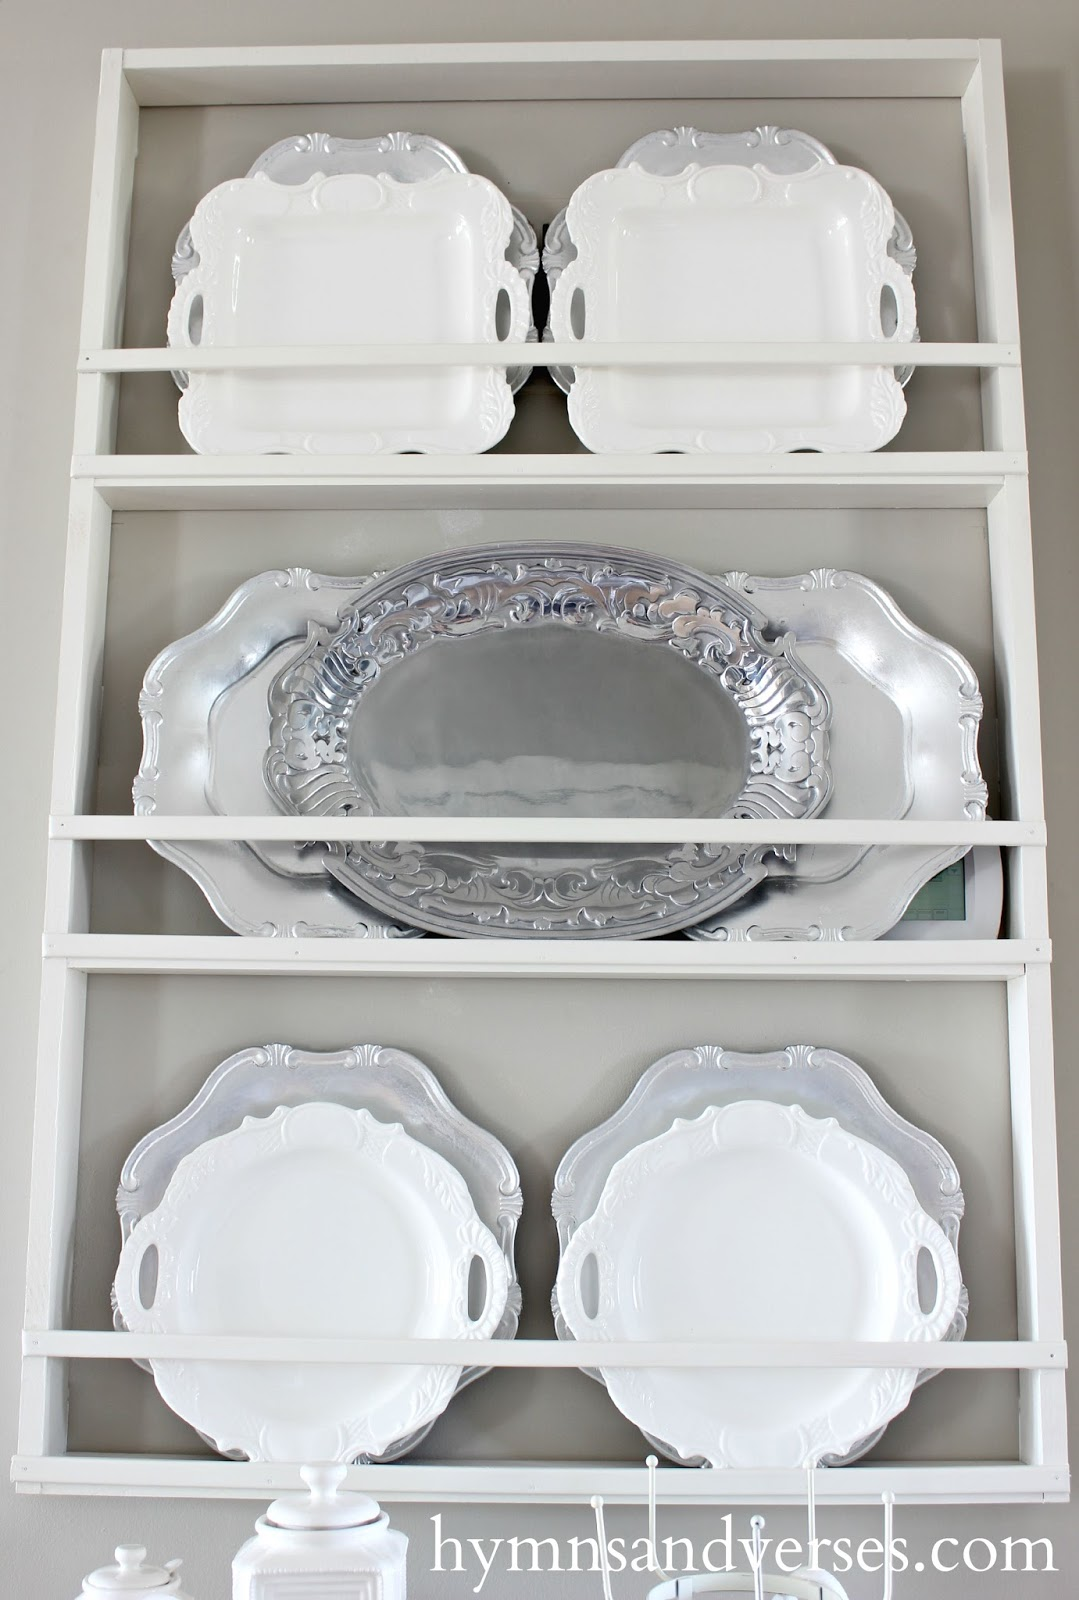 Build Your Own Plate Rack  sc 1 st  Hymns and Verses & Build Your Own DIY Plate Rack - Easy Plans - Hymns and Verses